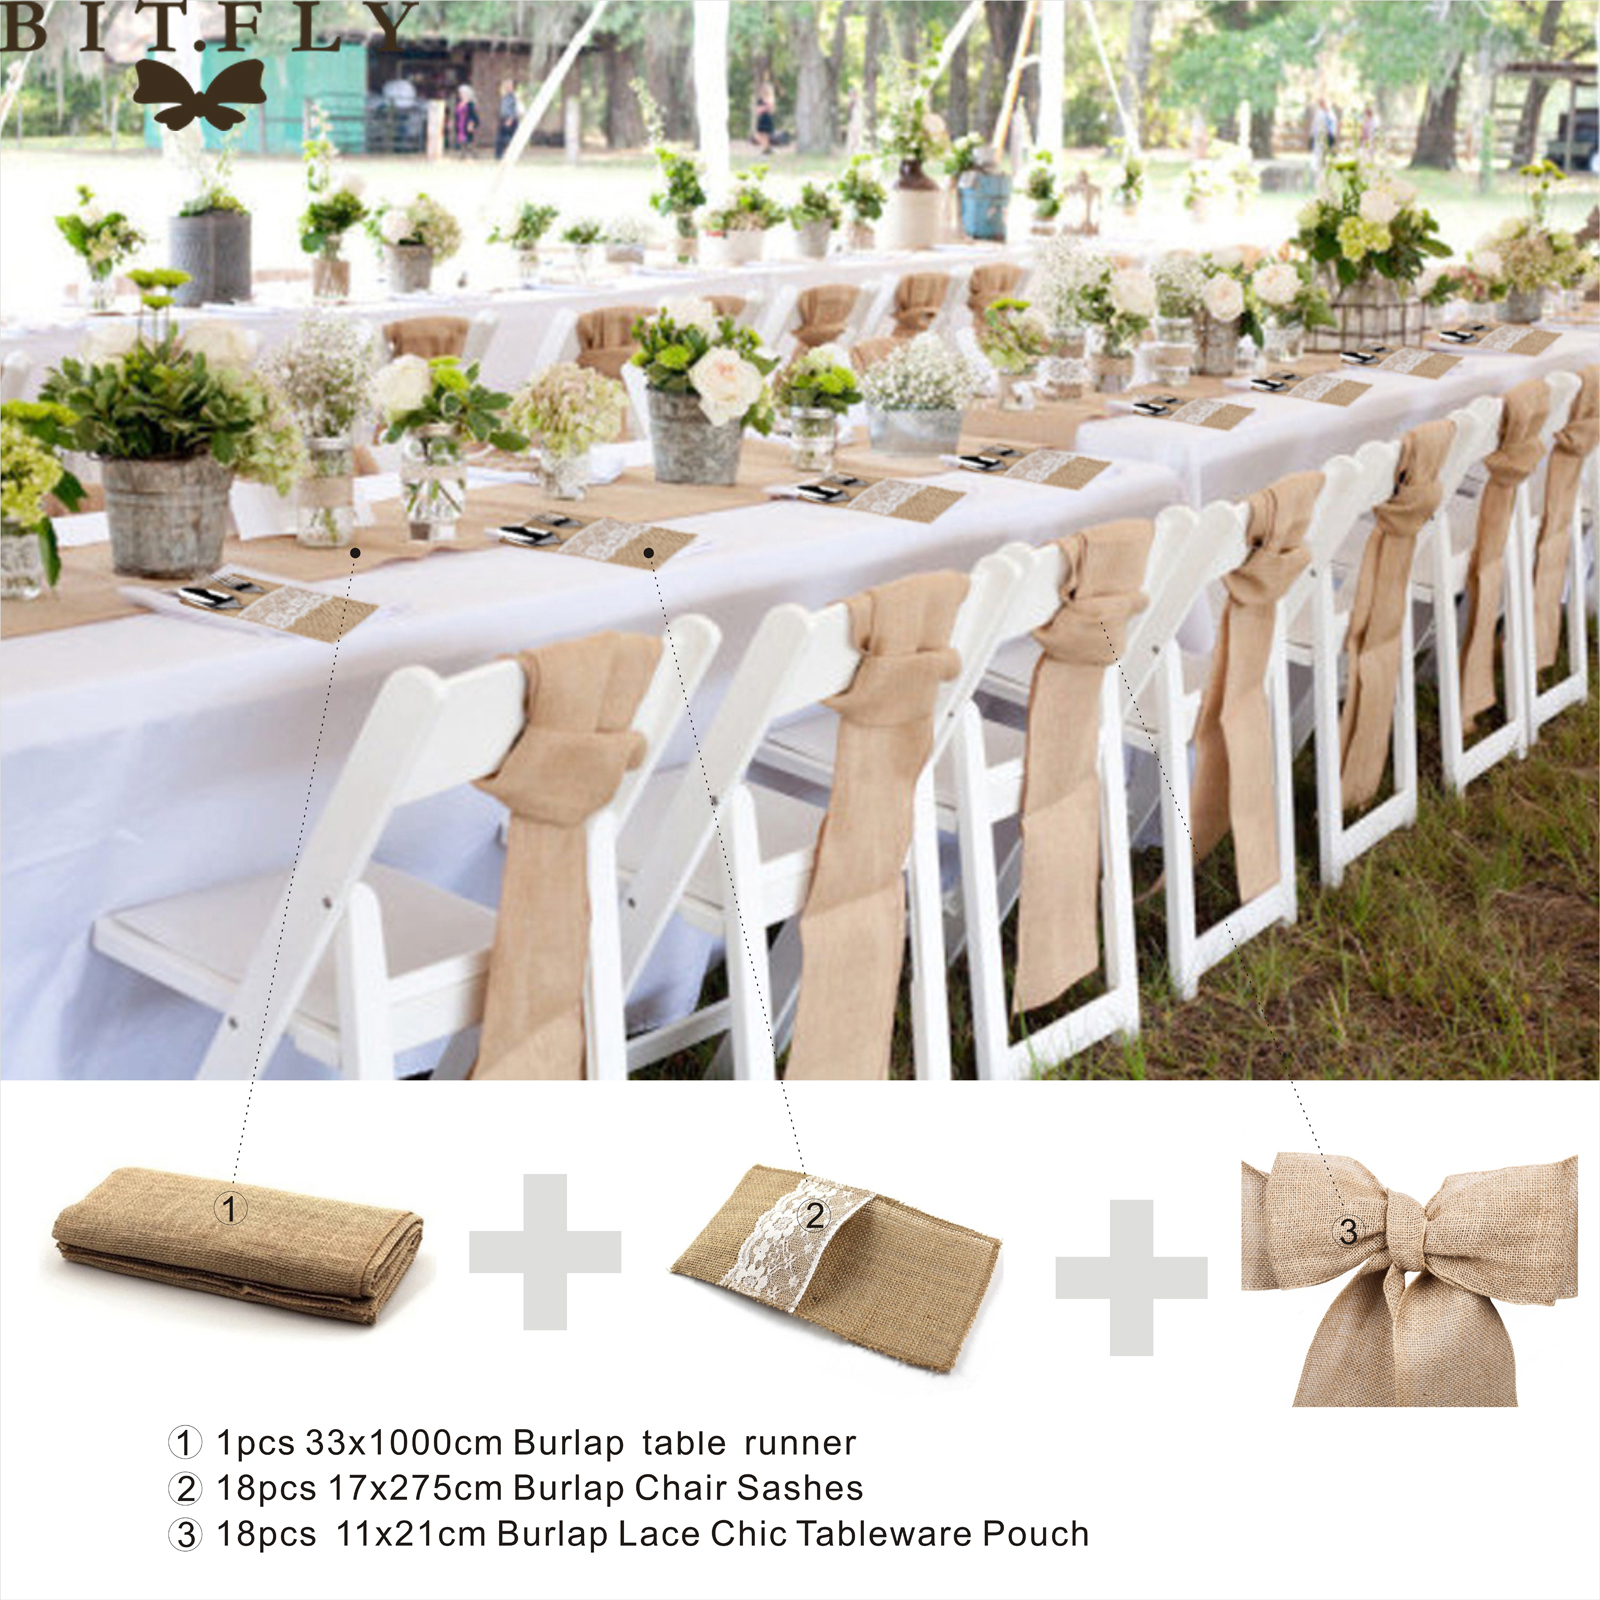 Rustic Wedding Decoration Burlap Chair Sashes jute Tie Bow burlap table runner Burlap Lace Tableware Pouch Banquet Home decor-in Party DIY Decorations from ...  sc 1 st  AliExpress.com & Rustic Wedding Decoration Burlap Chair Sashes jute Tie Bow burlap ...